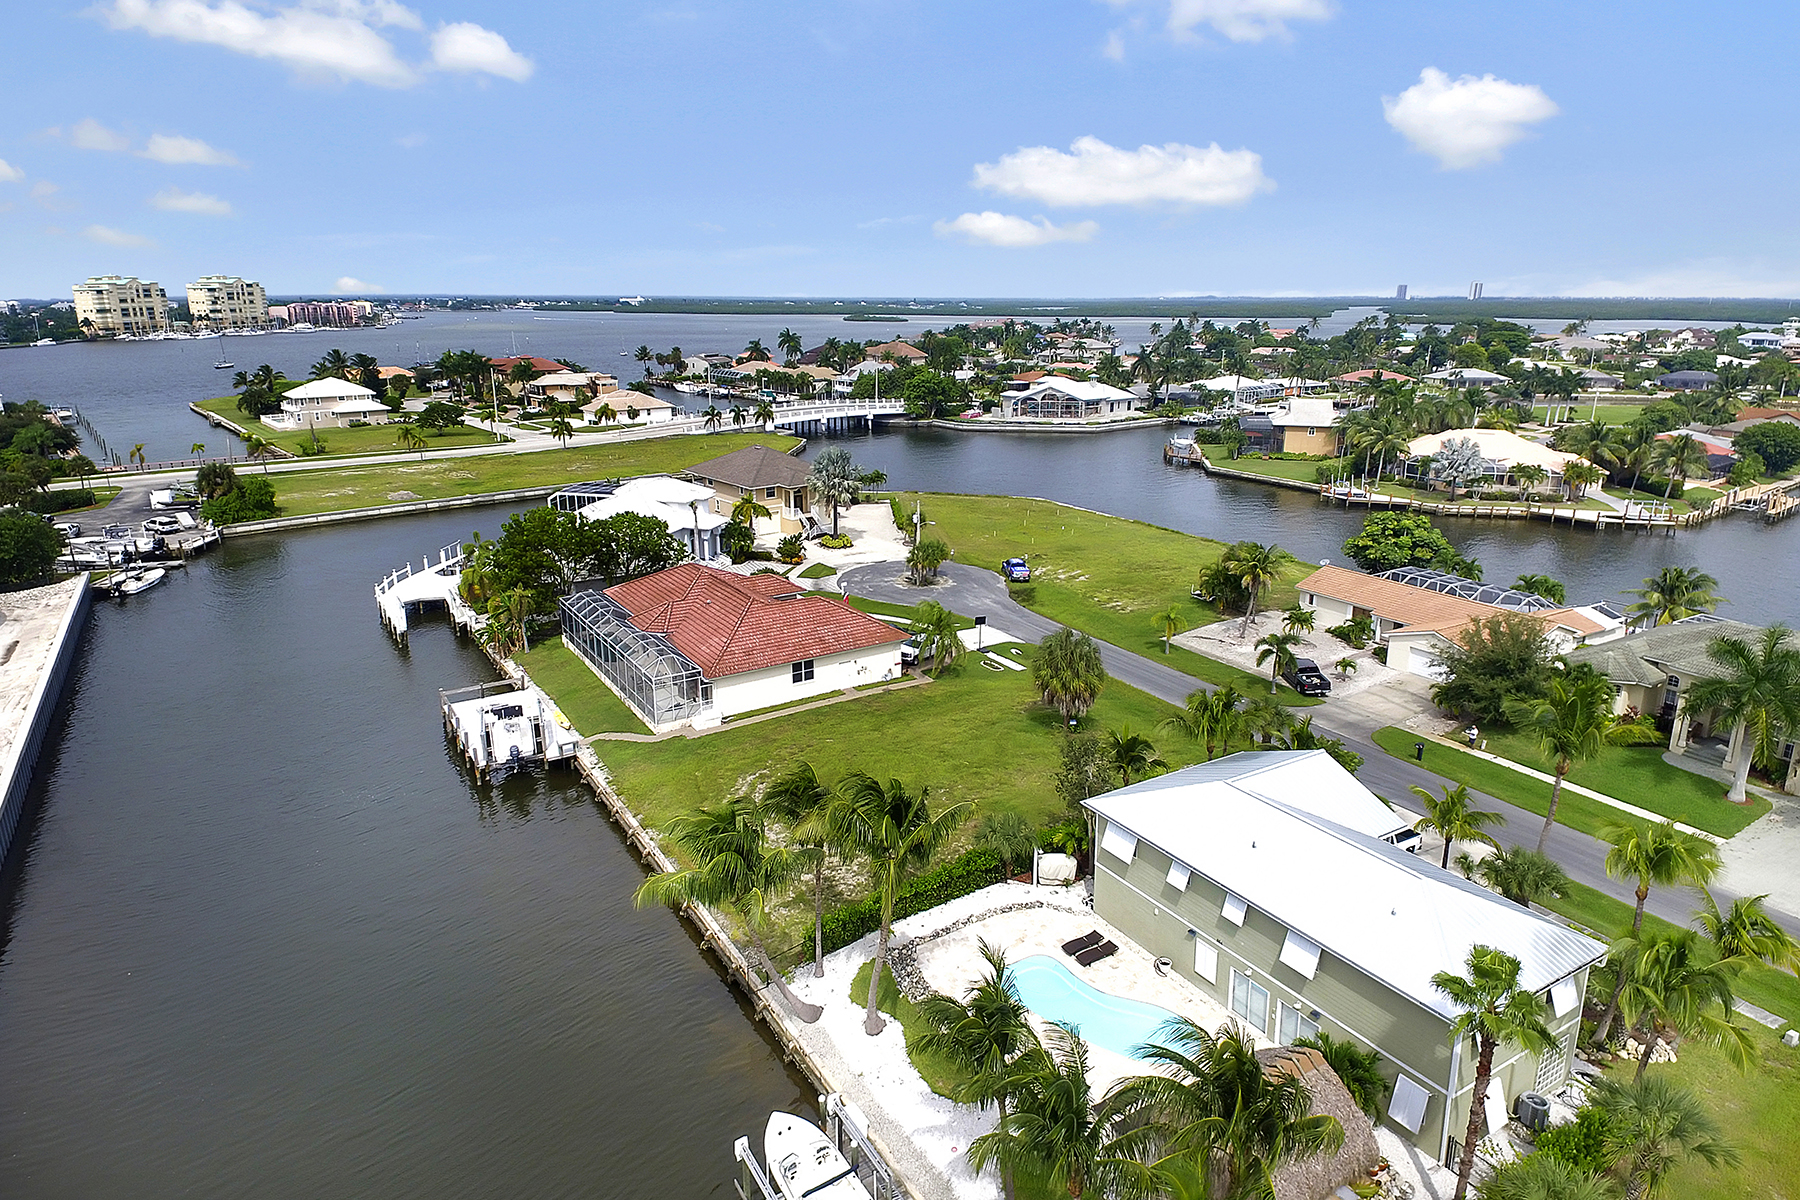 Land for Sale at MARCO ISLAND - ROSE COURT 872 Rose Ct Marco Island, Florida, 34145 United States